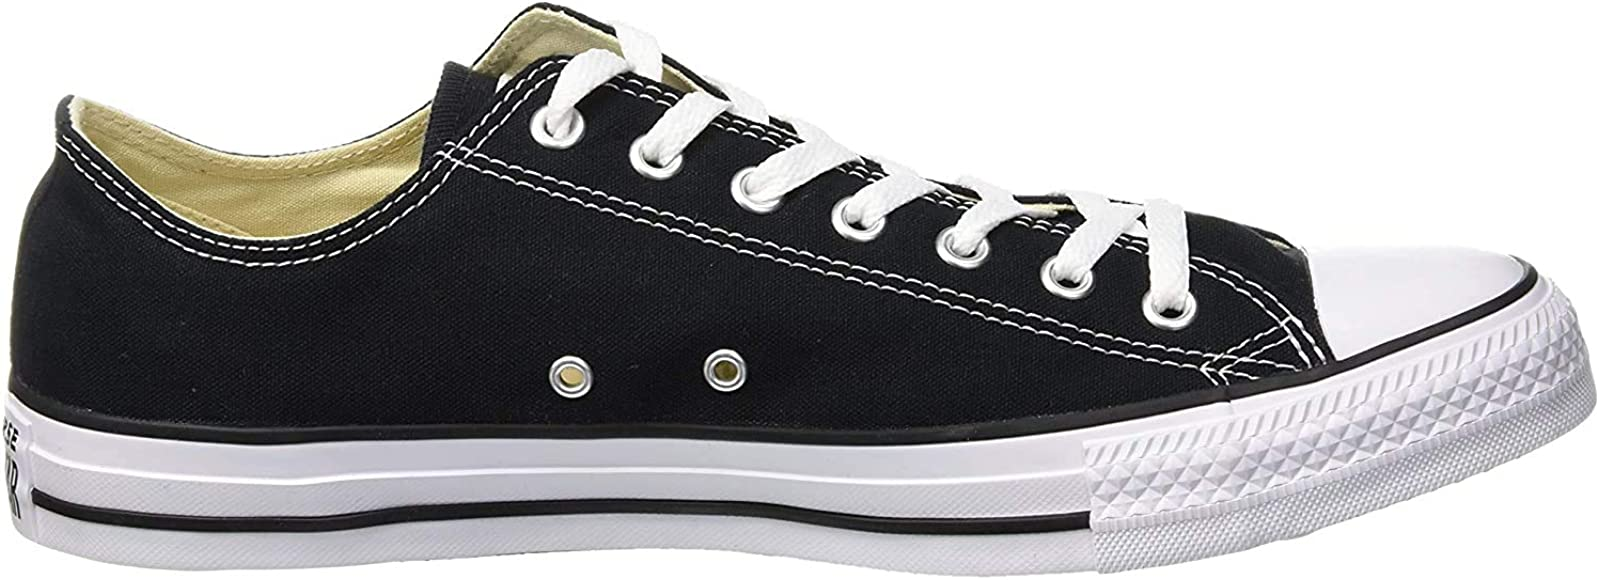 converse taylor all star ox black m91